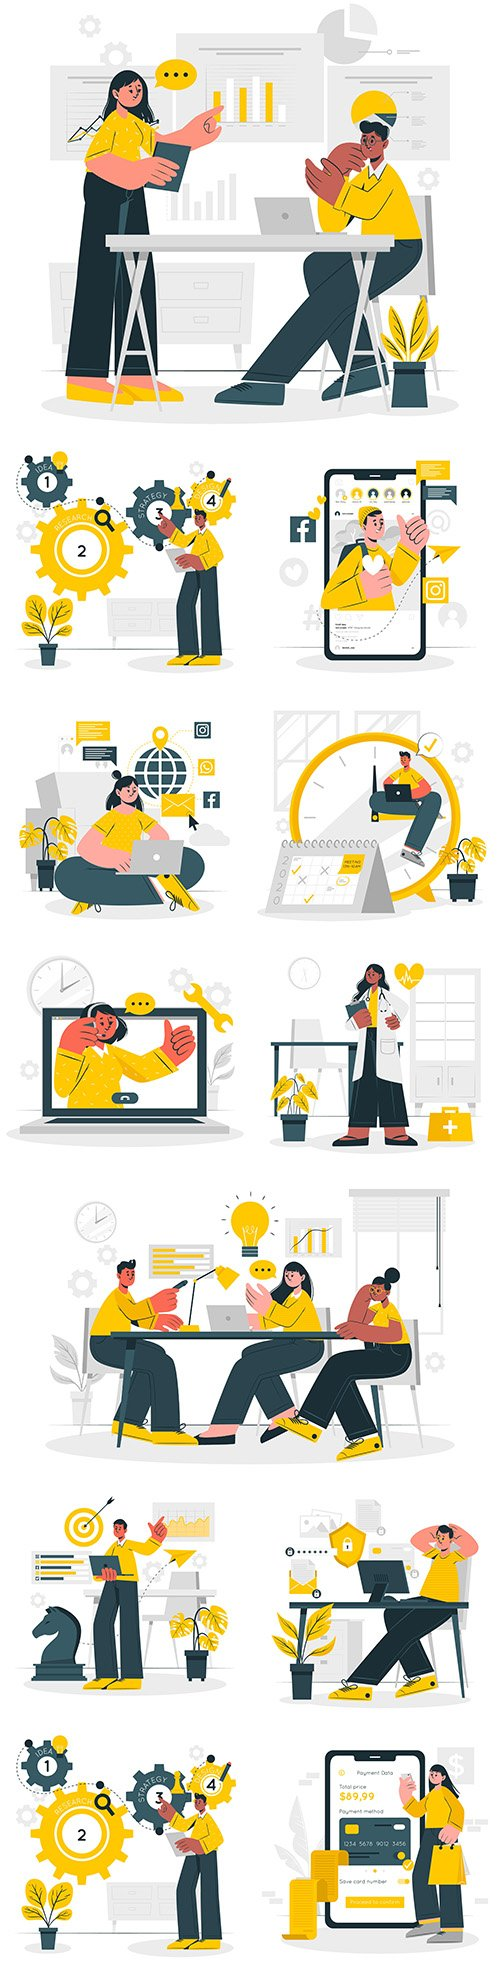 Business people and office work concept flat illustration